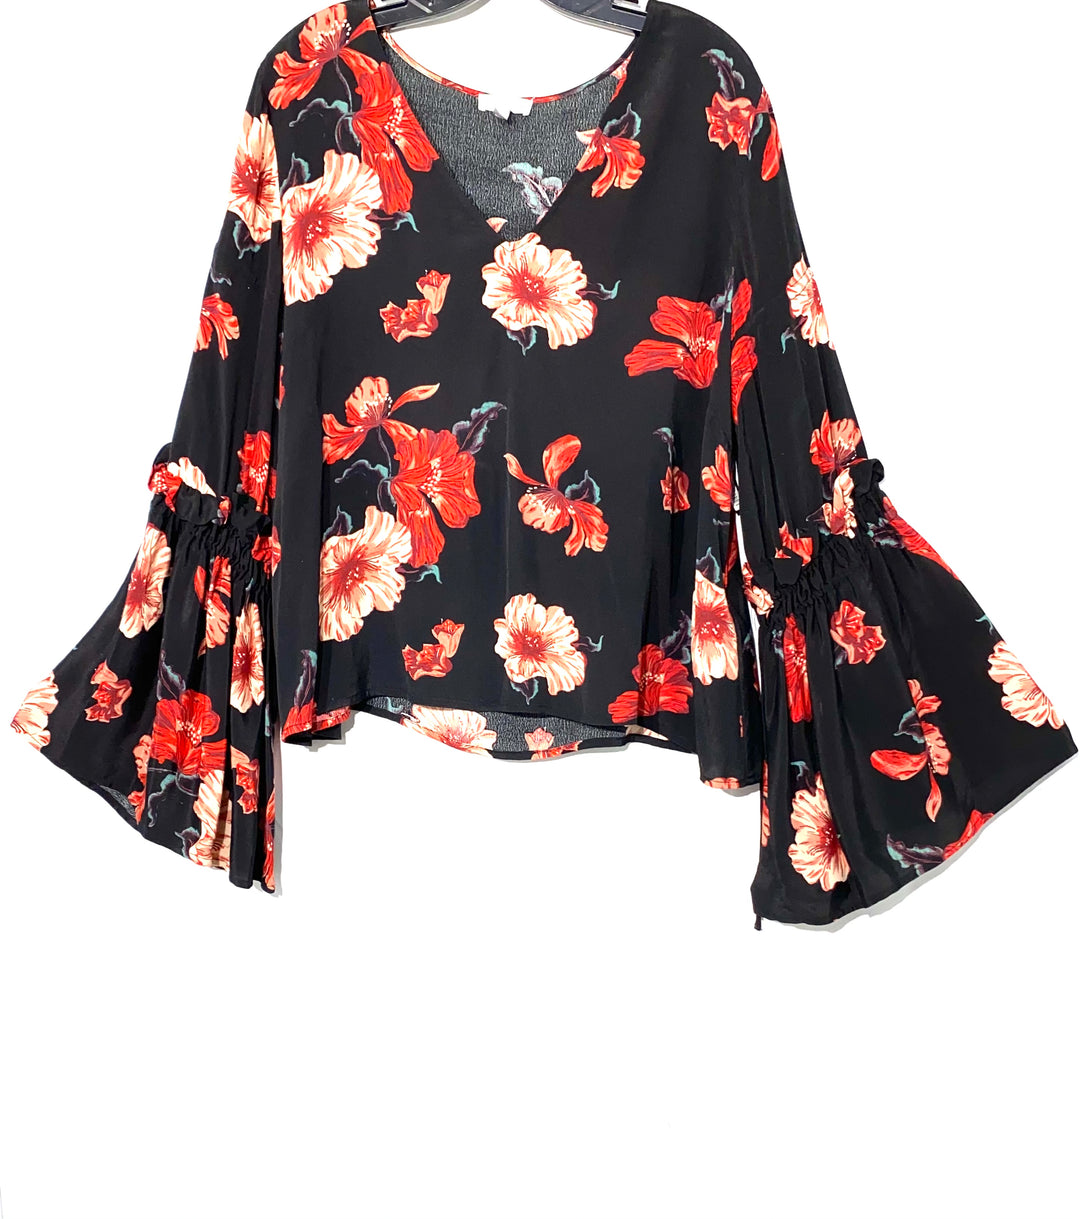 Primary Photo - BRAND: LEITH <BR>STYLE: BLOUSE <BR>COLOR: FLORAL <BR>SIZE: M <BR>SKU: 262-26211-130993